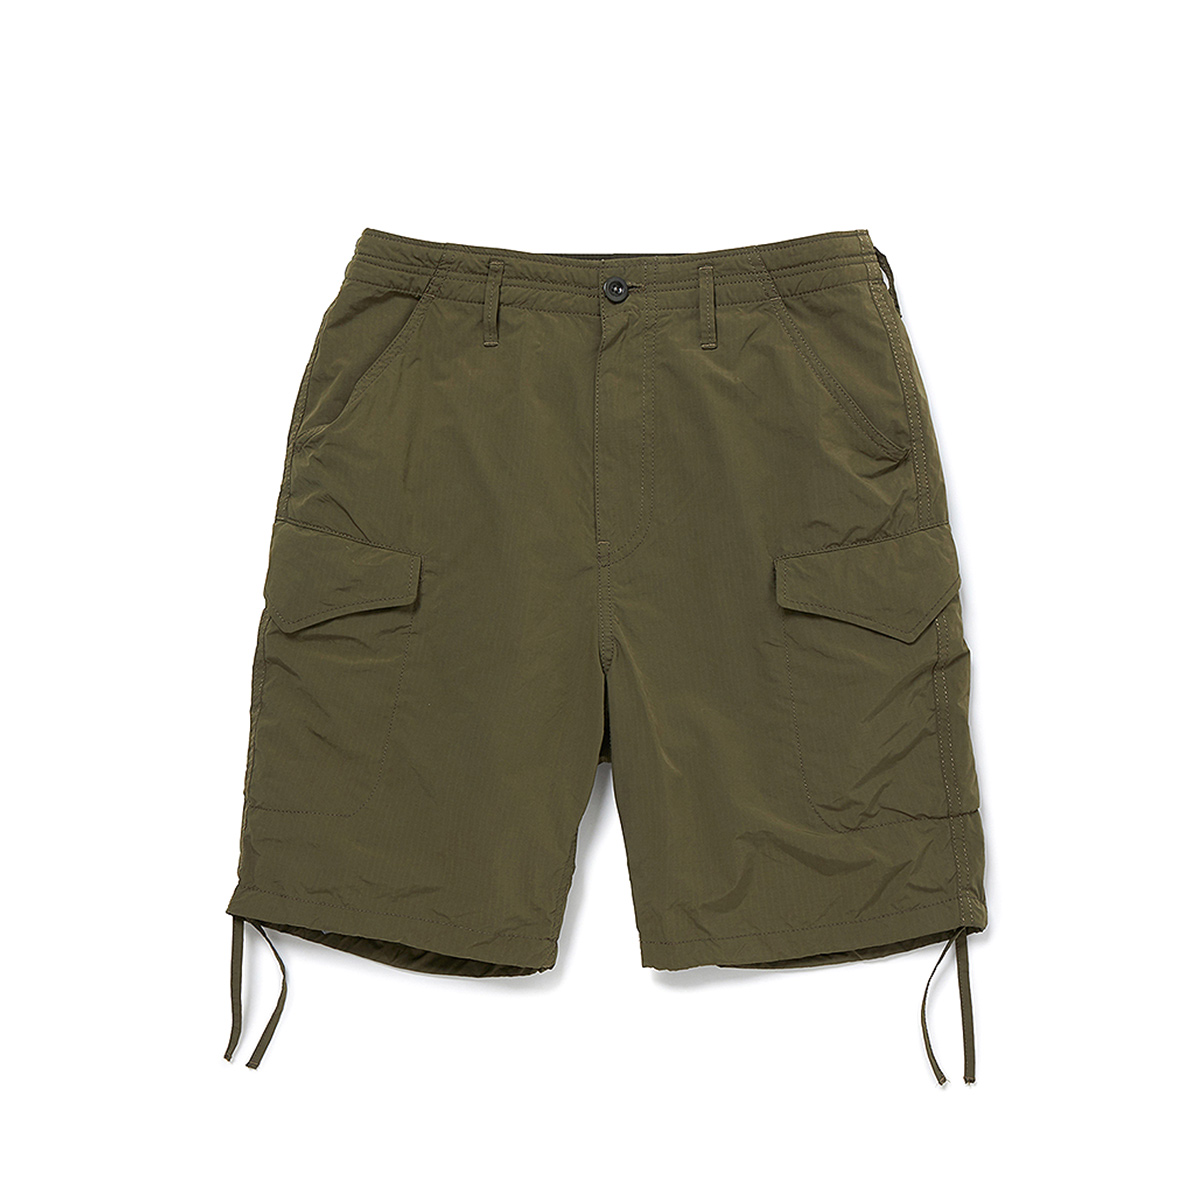 nonnative / HUNTER 6P SHORTS P/N RIPSTOP -Olive